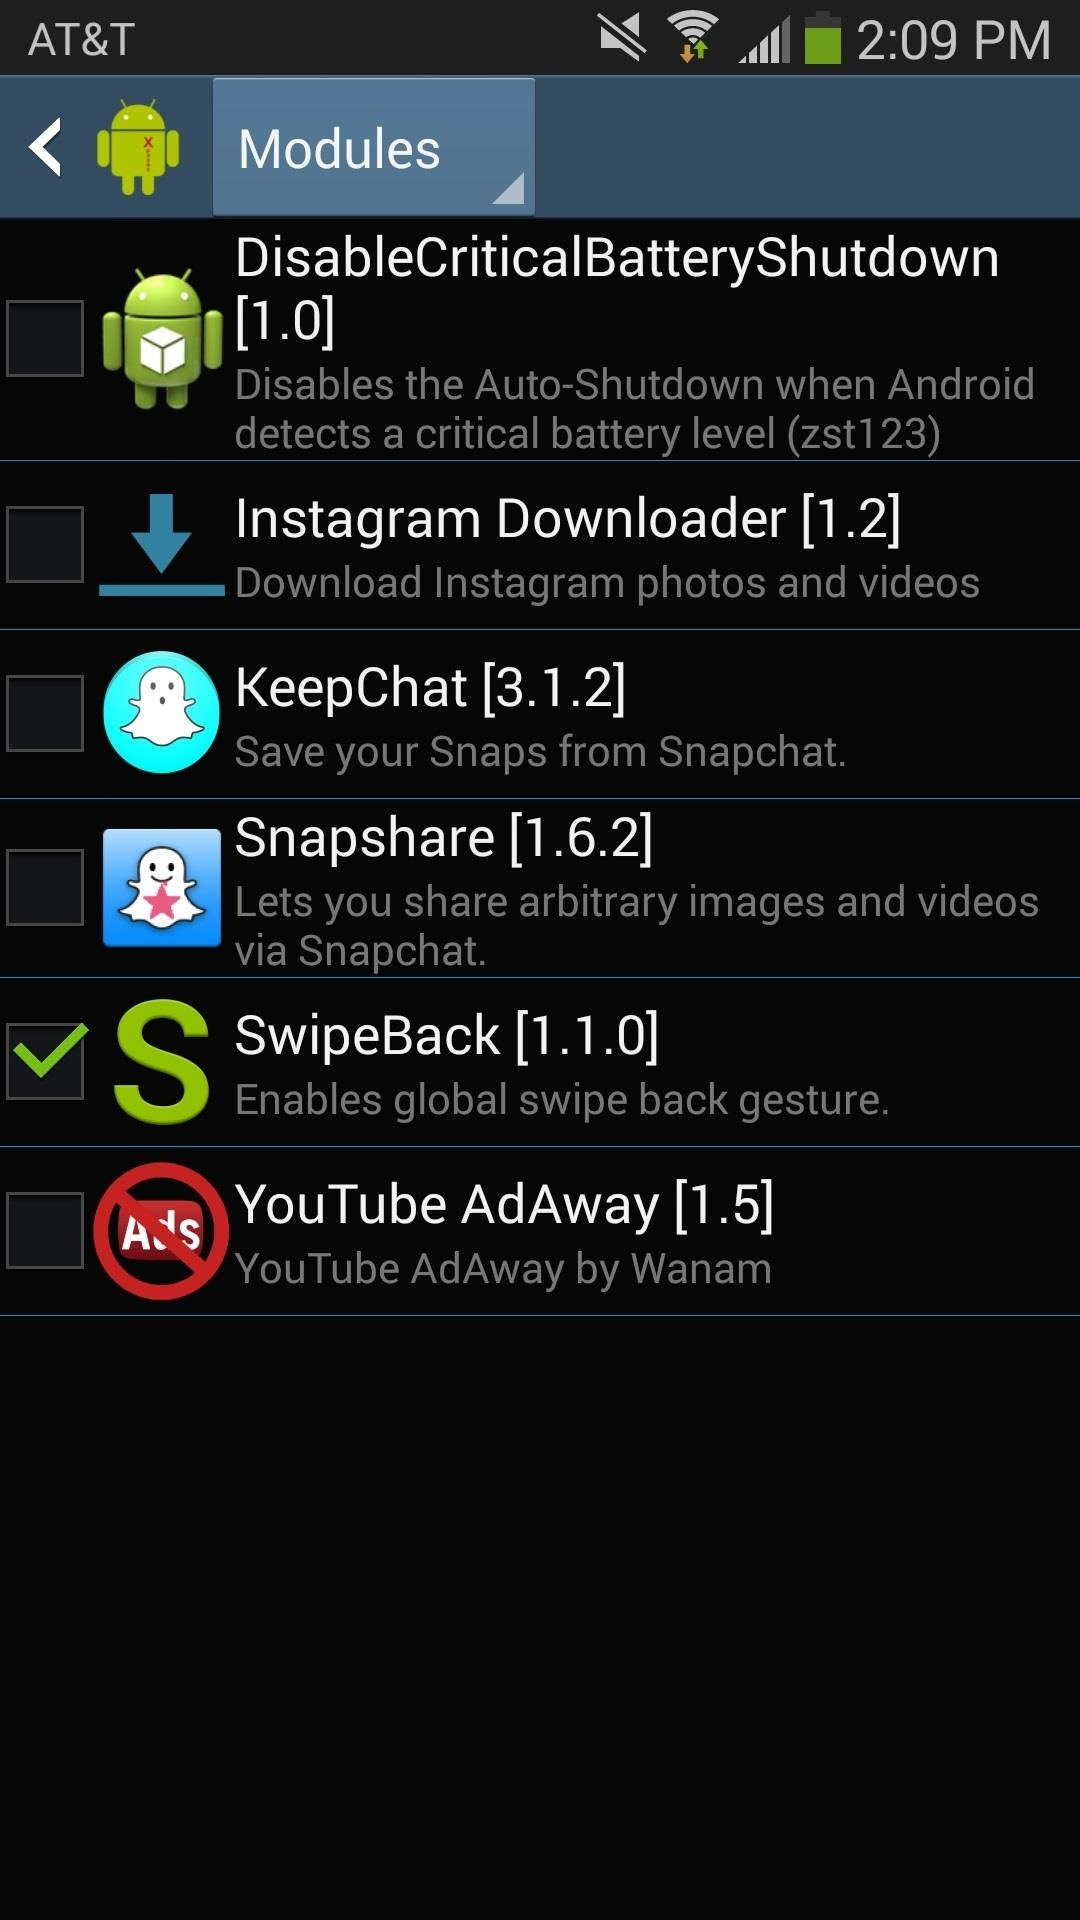 How to Enable the Swipe-Back Gesture for All Apps on the Galaxy Note 2 & 3